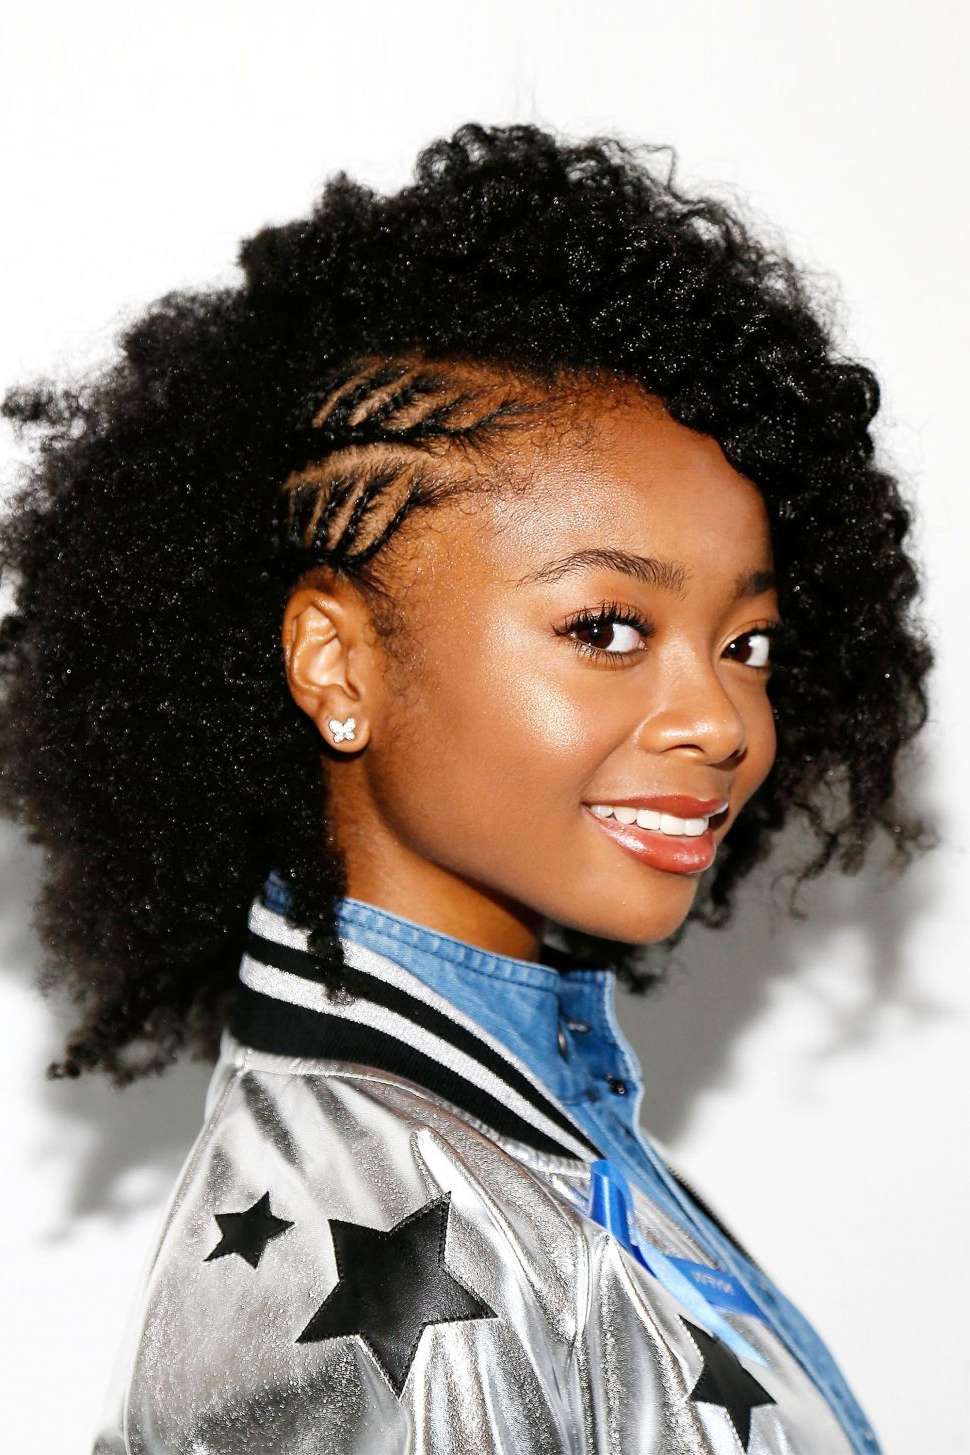 Hairstyles : African Natural Curly Hair Super Amazing 15 Intended For Latest Naturally Curly Braided Hairstyles (Gallery 17 of 20)